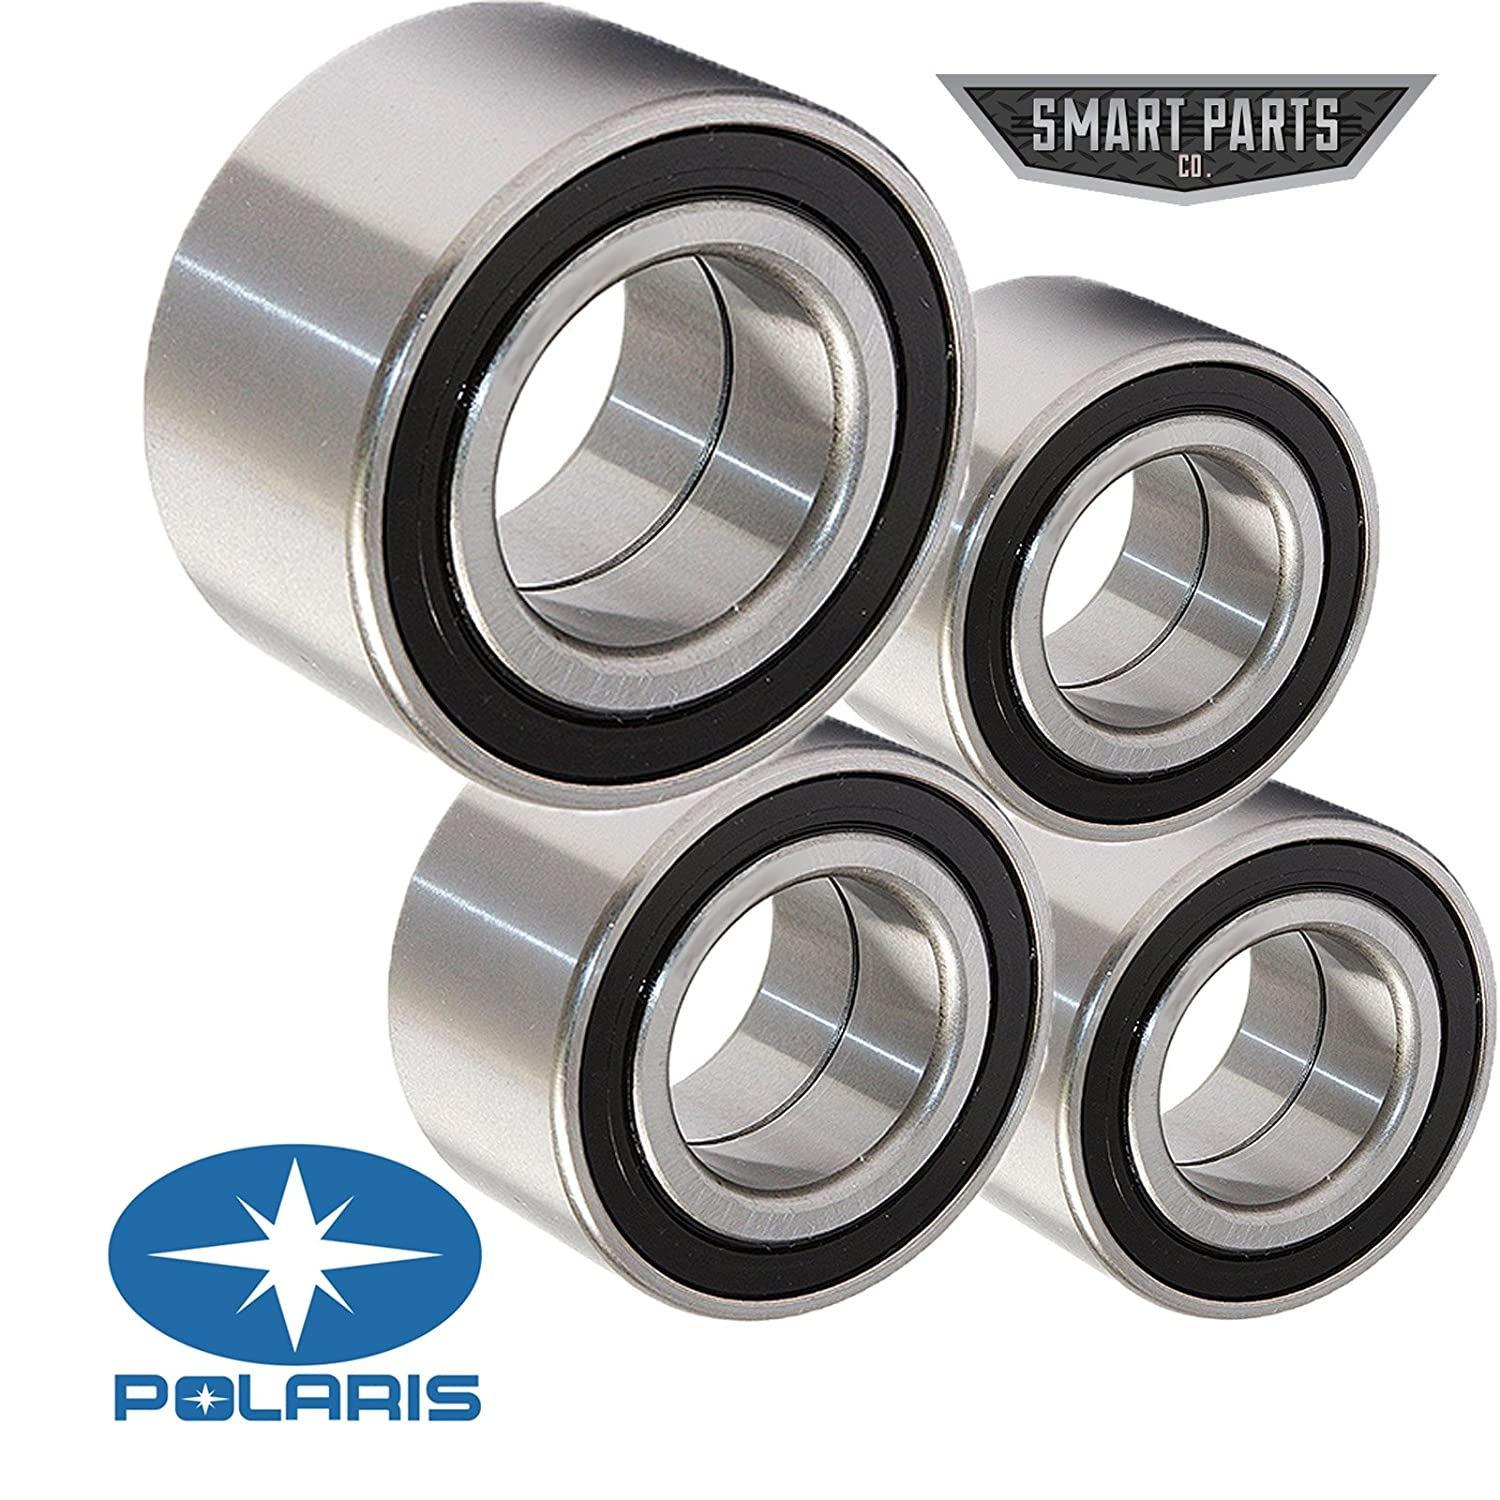 Polaris RZR 800 / S / 4 Front & Rear Wheel Bearings Kit (4) 2010 2011 2012 2013 2014 Bearings SmartPartsCo.com